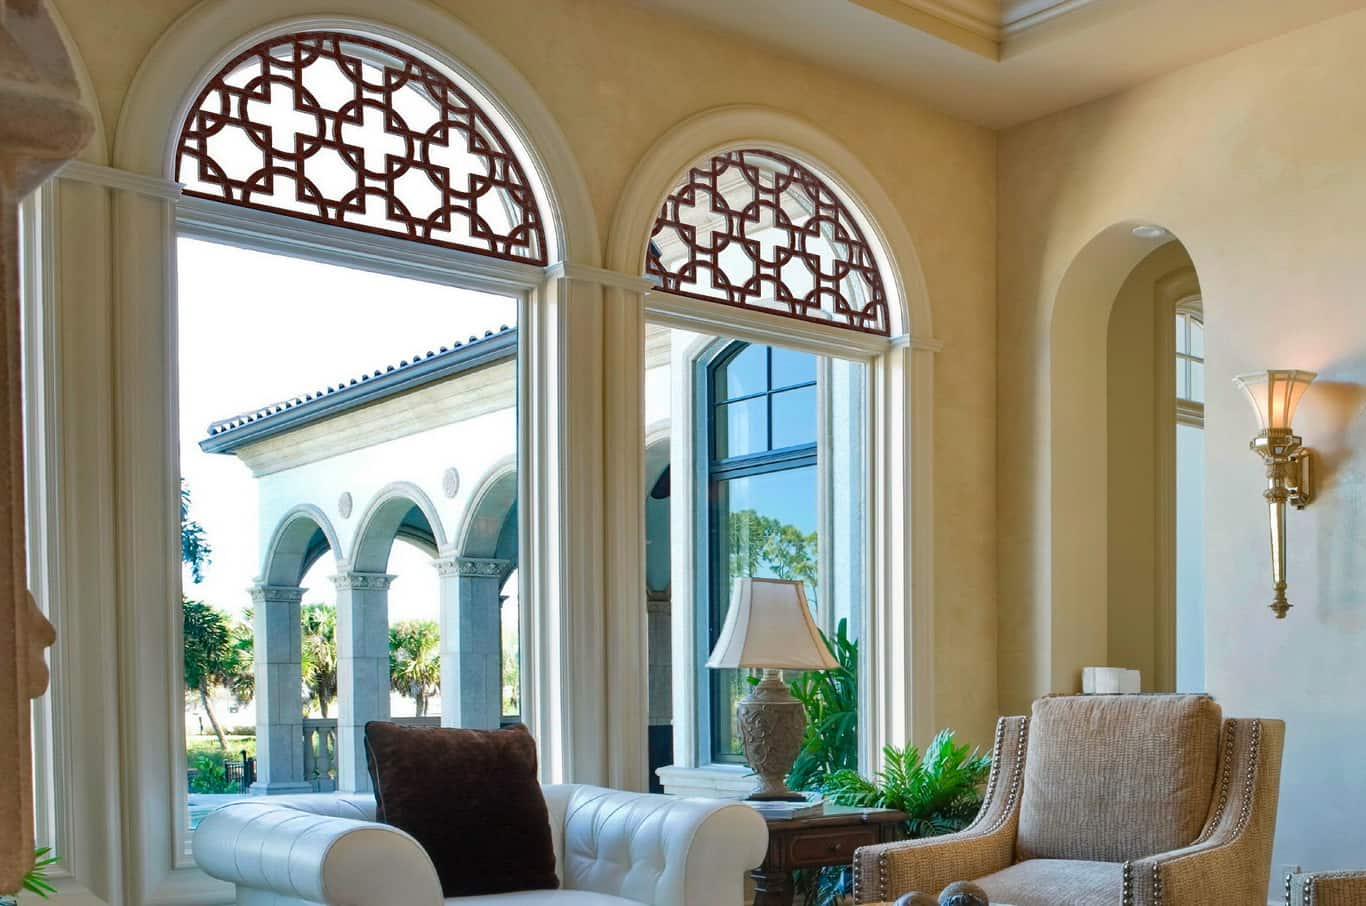 tableaux-decorative-grilles-residential-home-decor-interior-decorating-window-treatment-veneer-latina-901-somerset-VT5-002.jpg